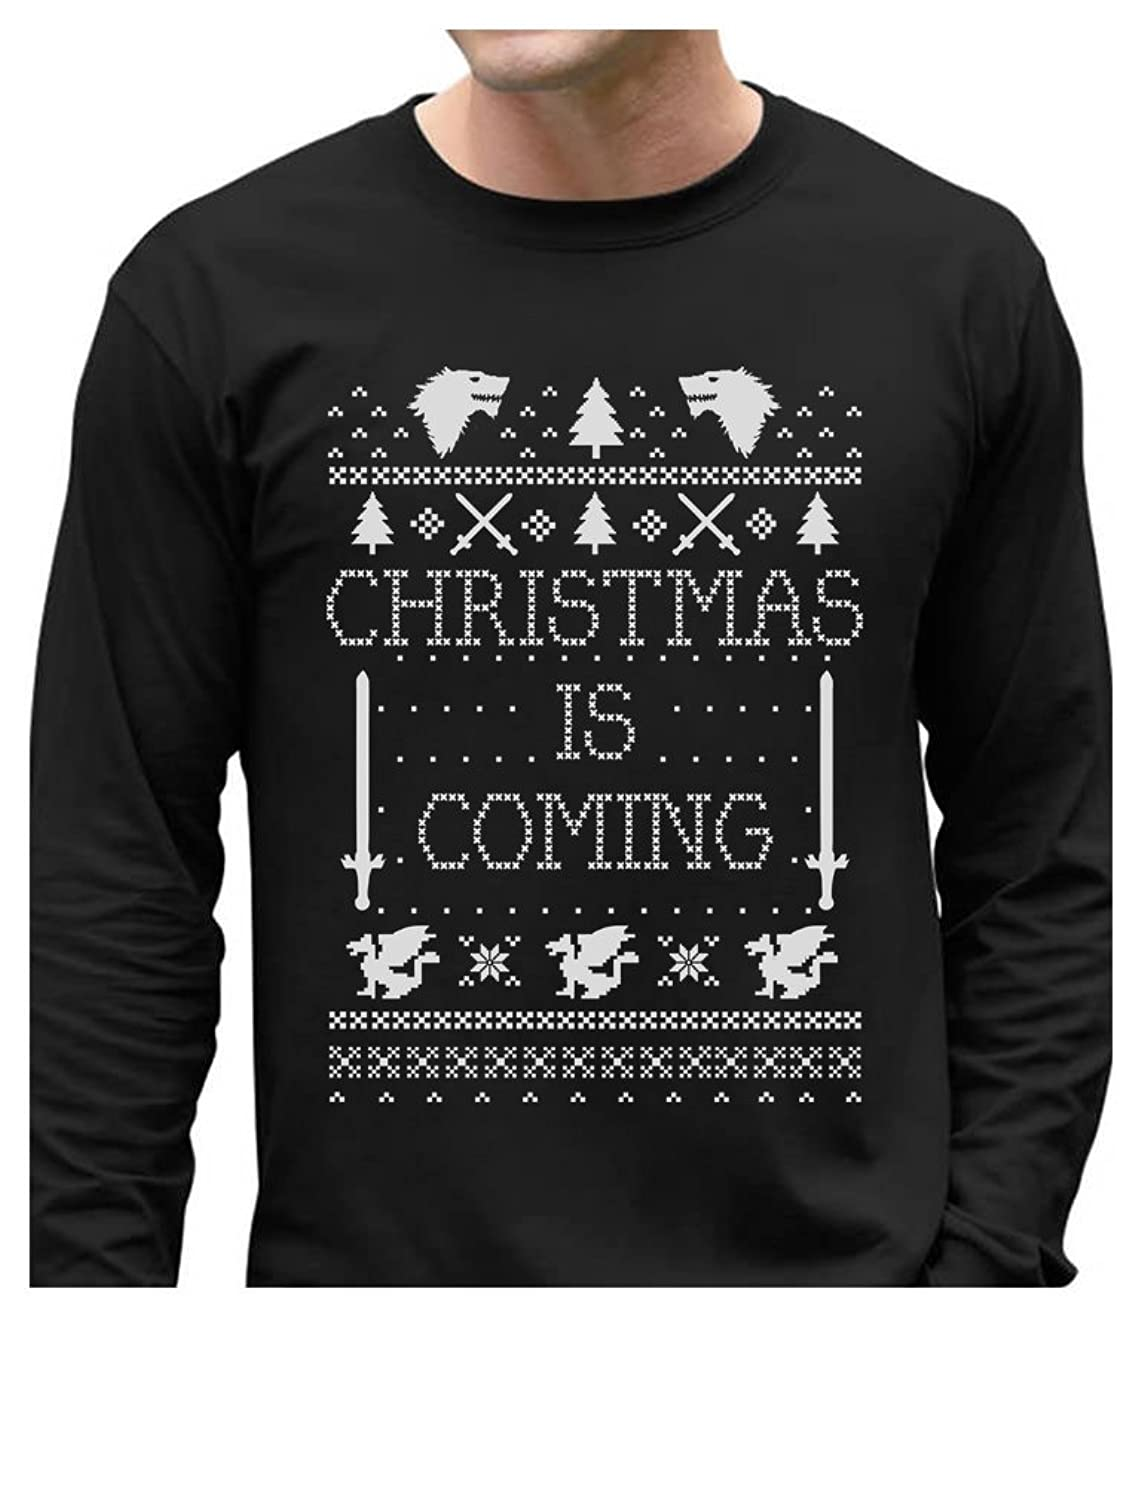 Christmas Is Coming Ugly Christmas Sweater Long Sleeve T-Shirt